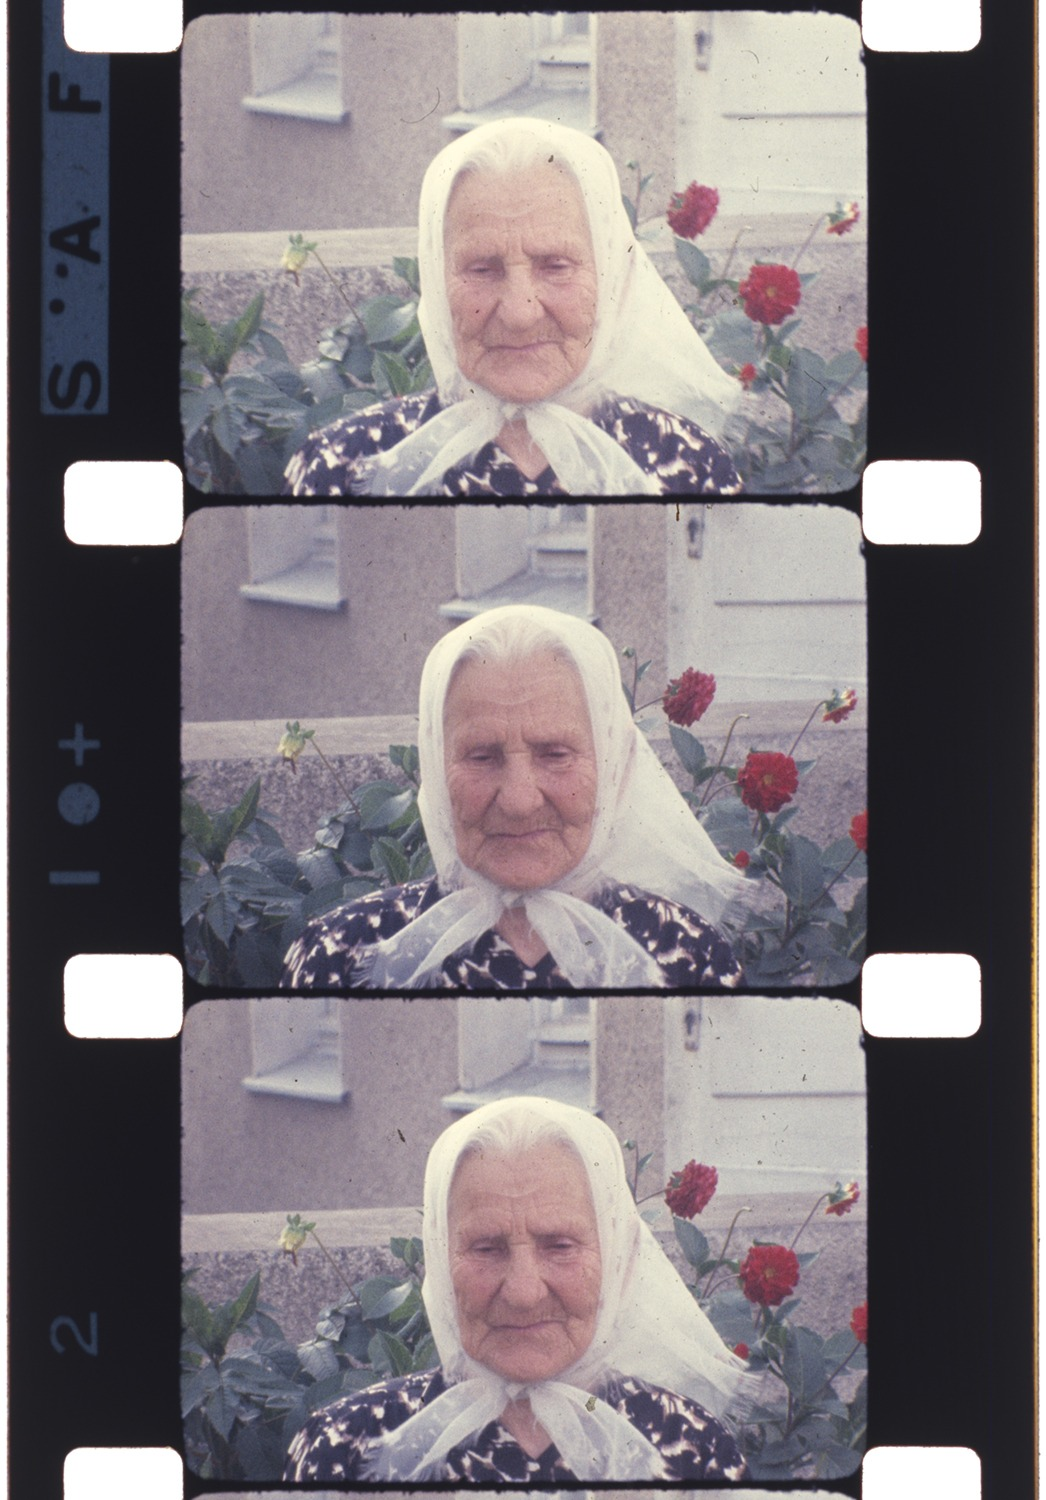 Still from Joans Mekas's Reminiscences of a Journey to Lithuania (1972) Courtesy of The Estate of Jonas Mekas